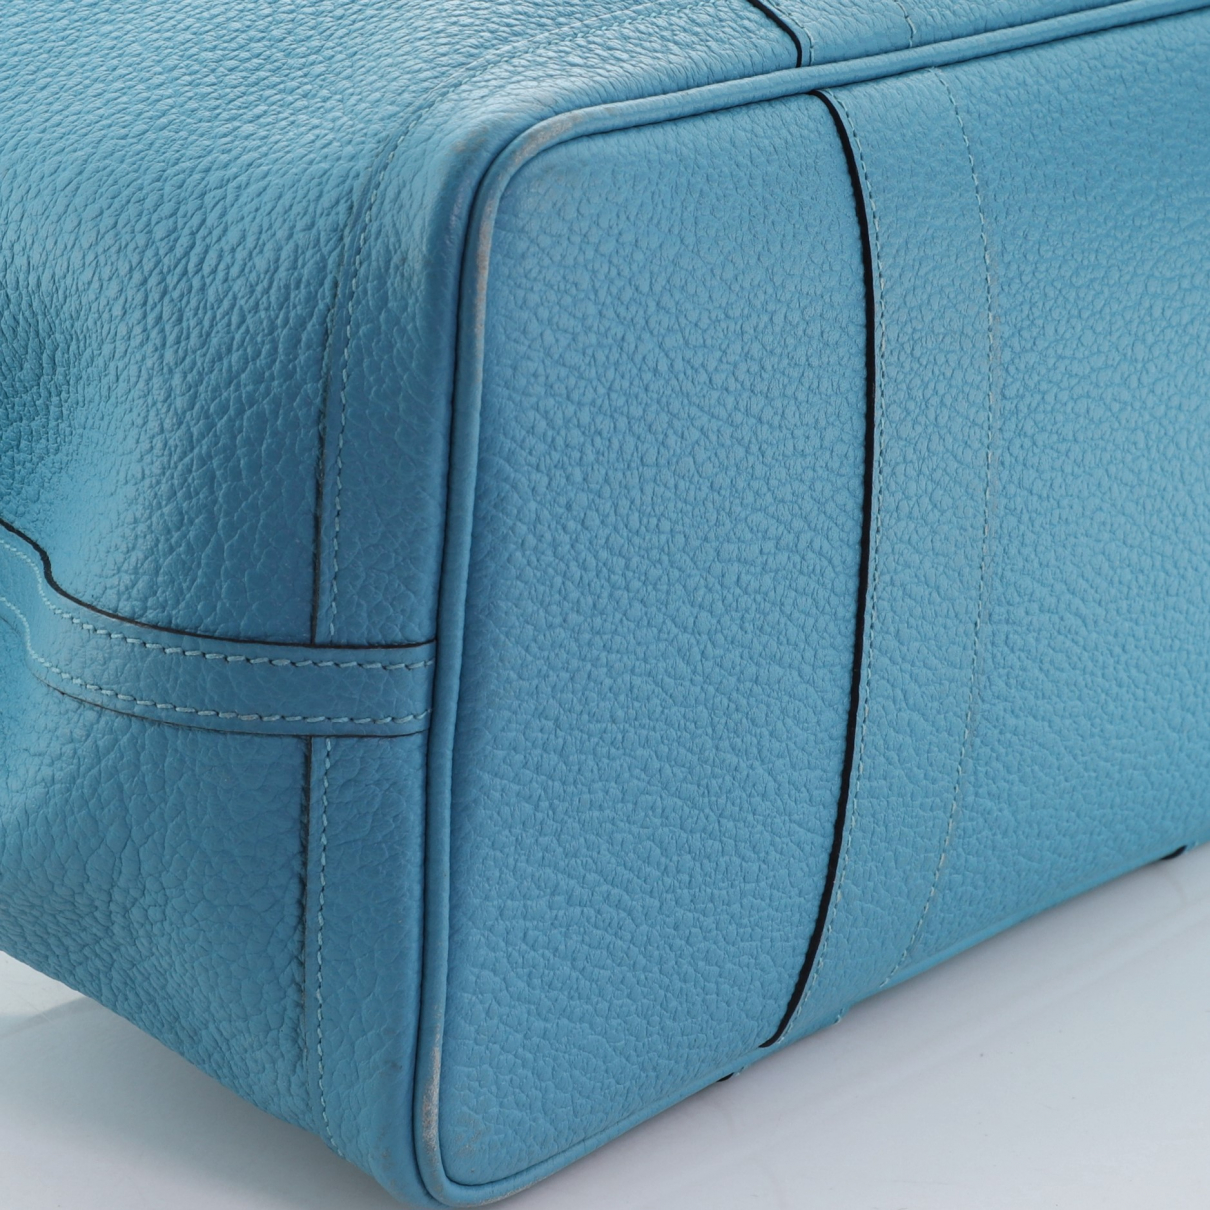 Hermès \N Blue Leather handbag for Women \N